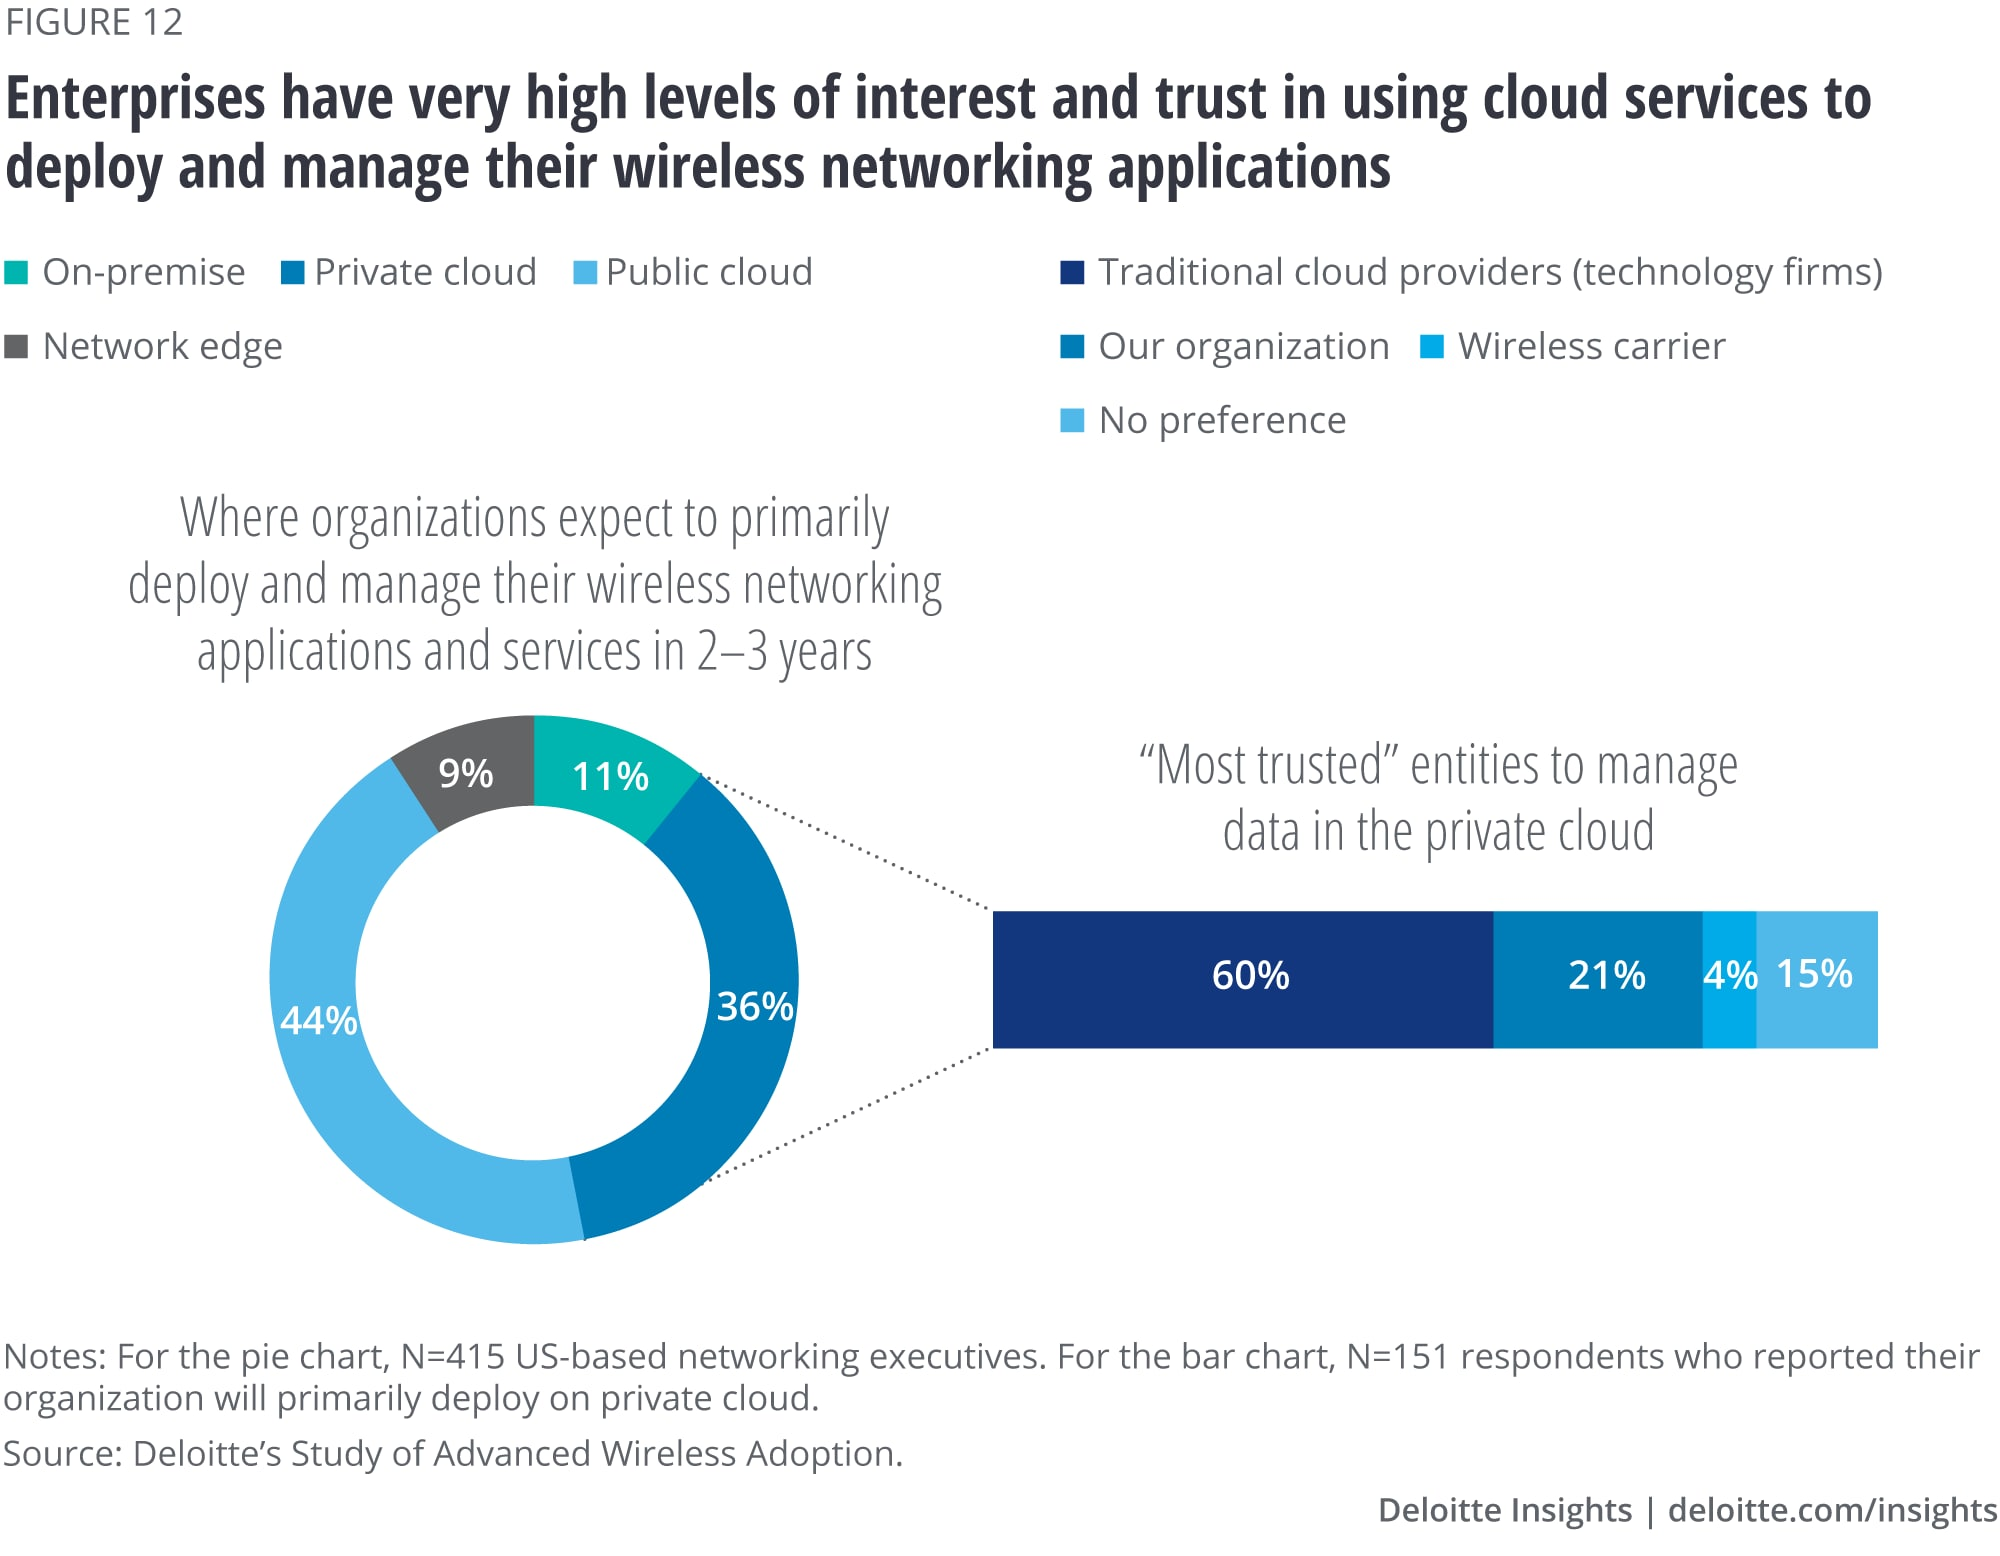 Enterprises have very high levels of interest and trust in using cloud services to deploy and manage their wireless networking applications